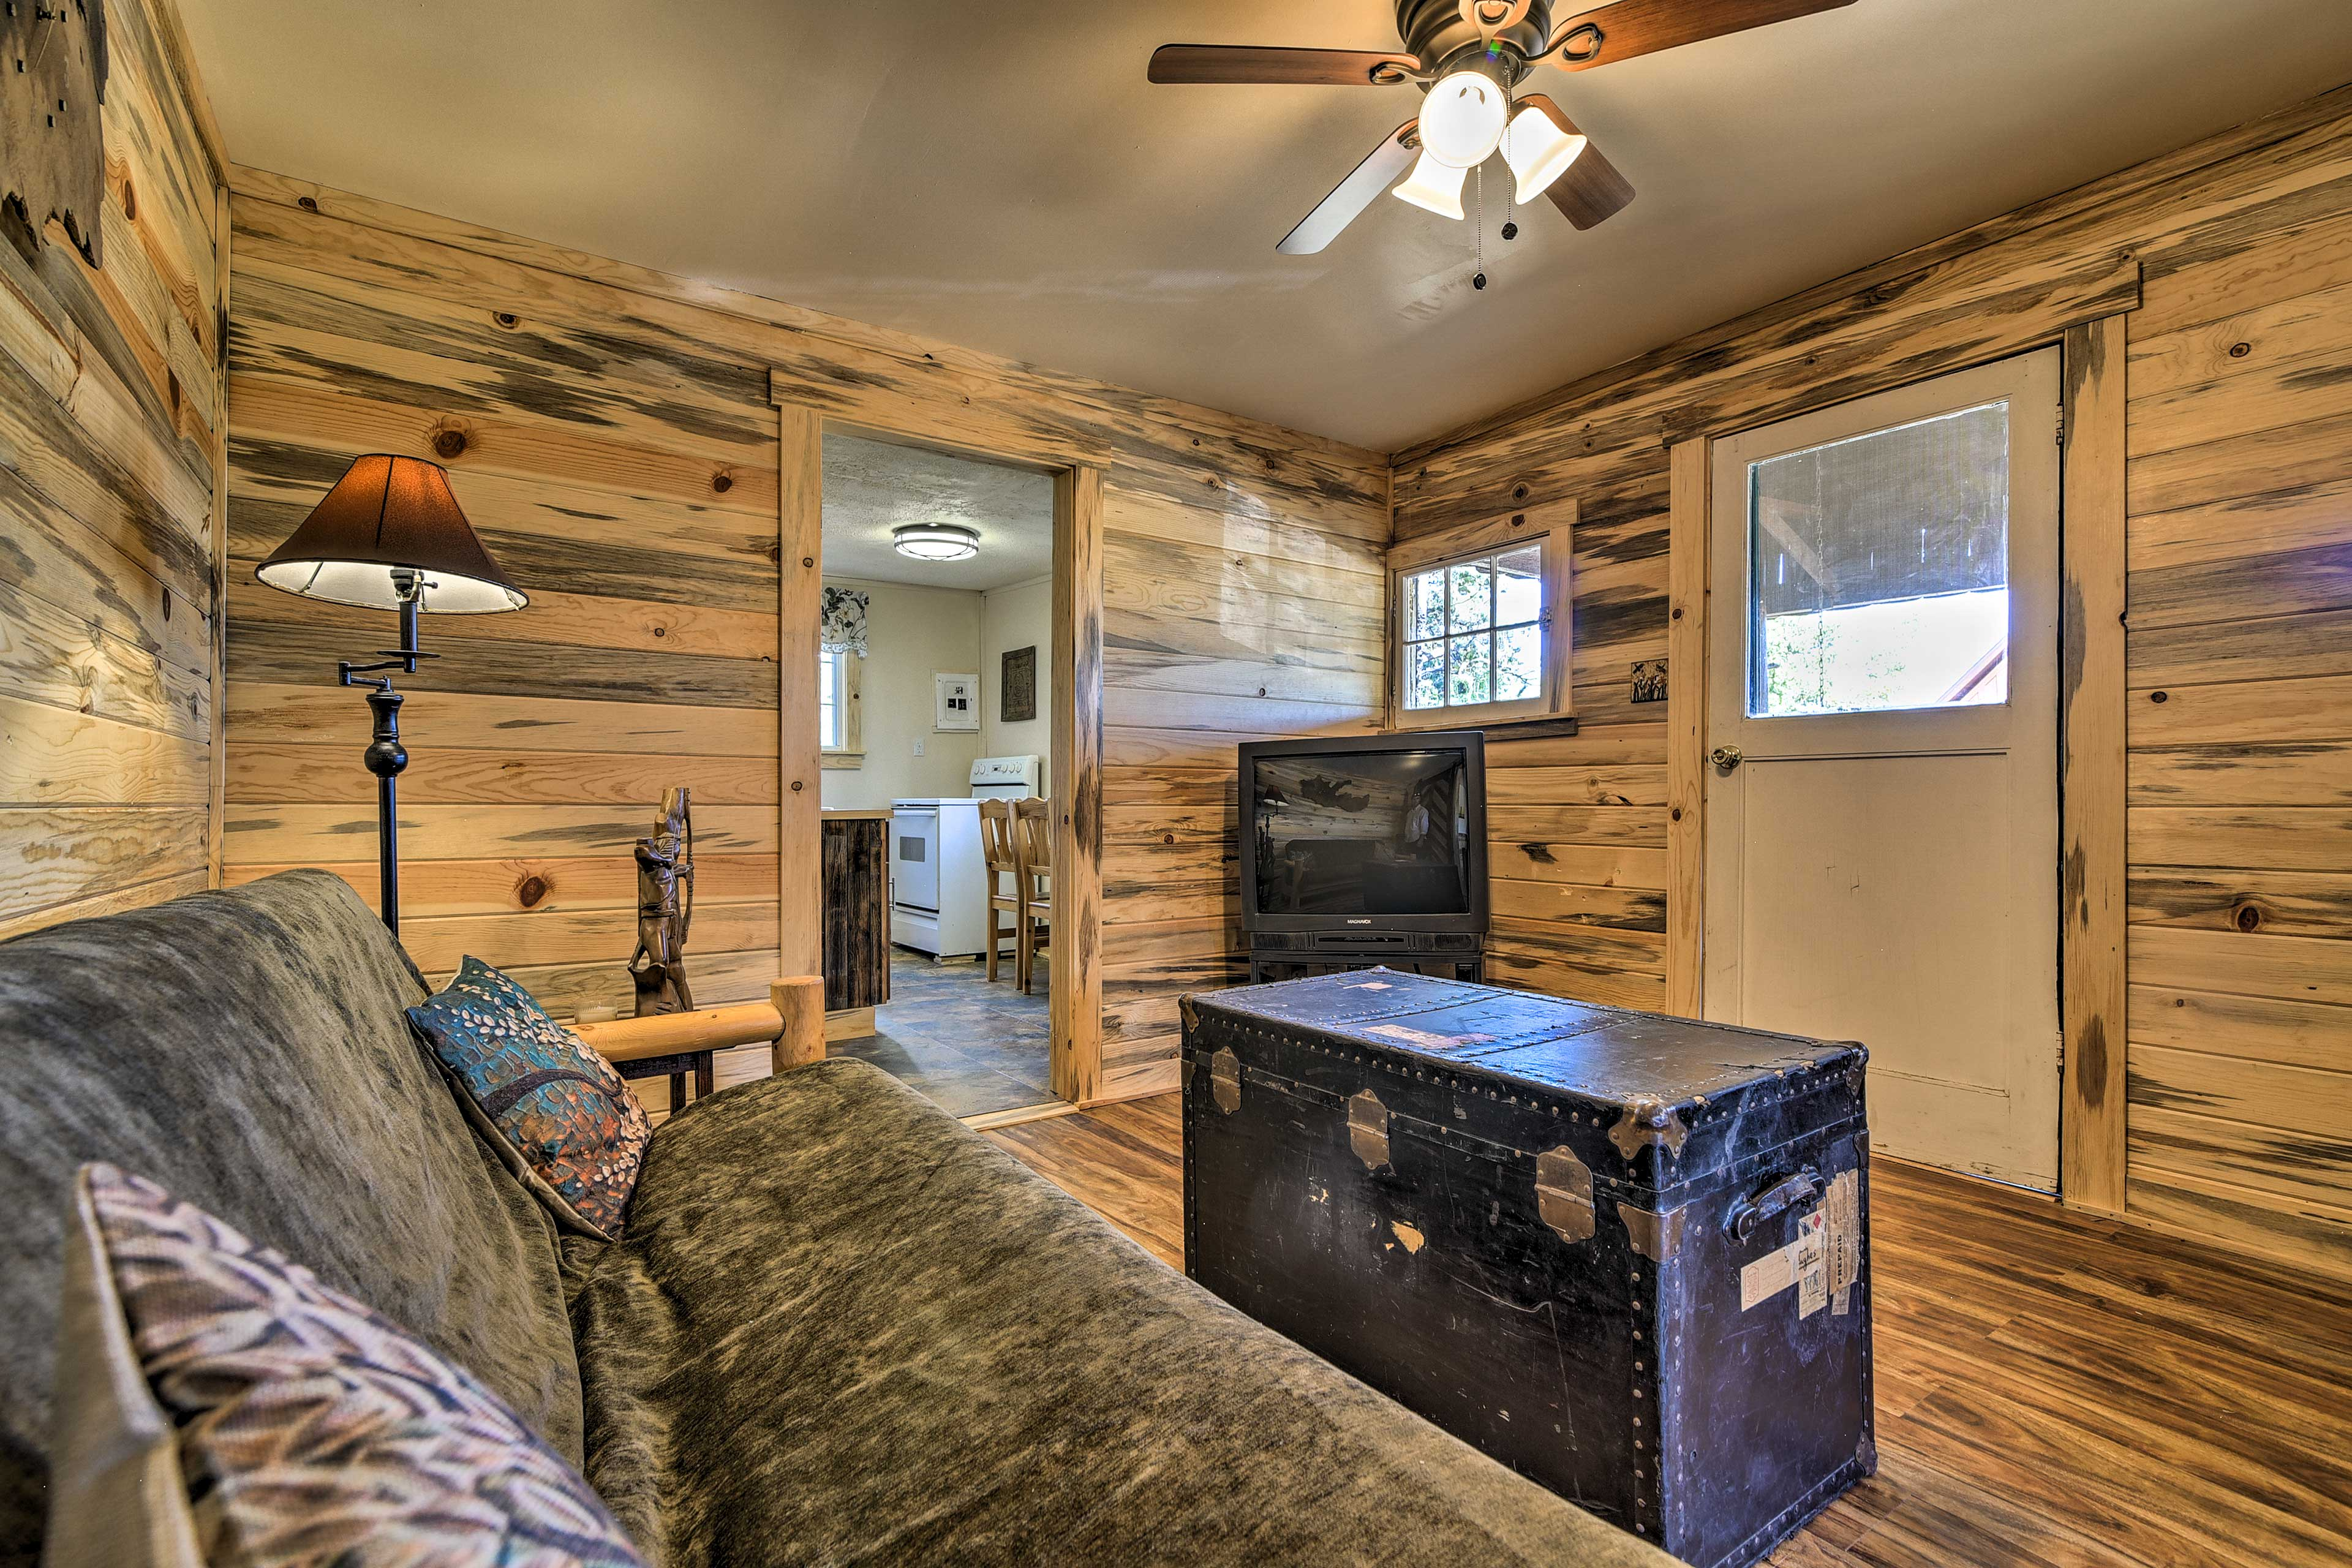 The cabin has ceiling fans and central heating.